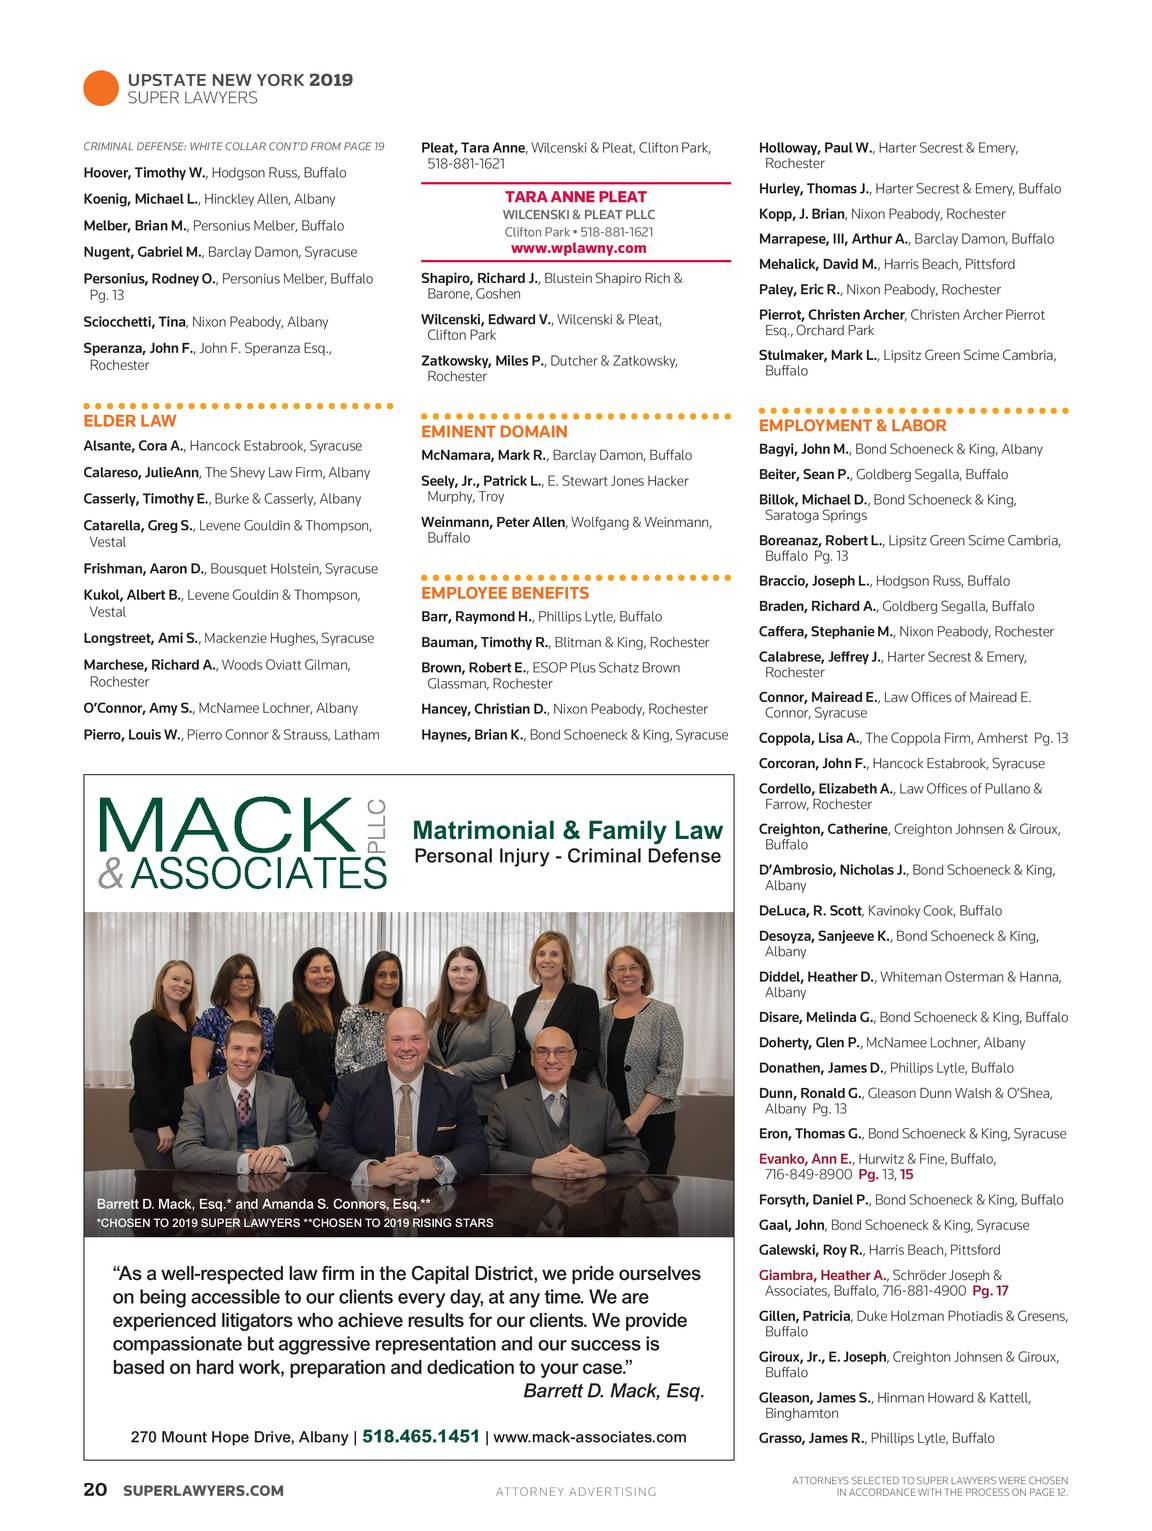 Super Lawyers - Upstate New York 2019 - page 19